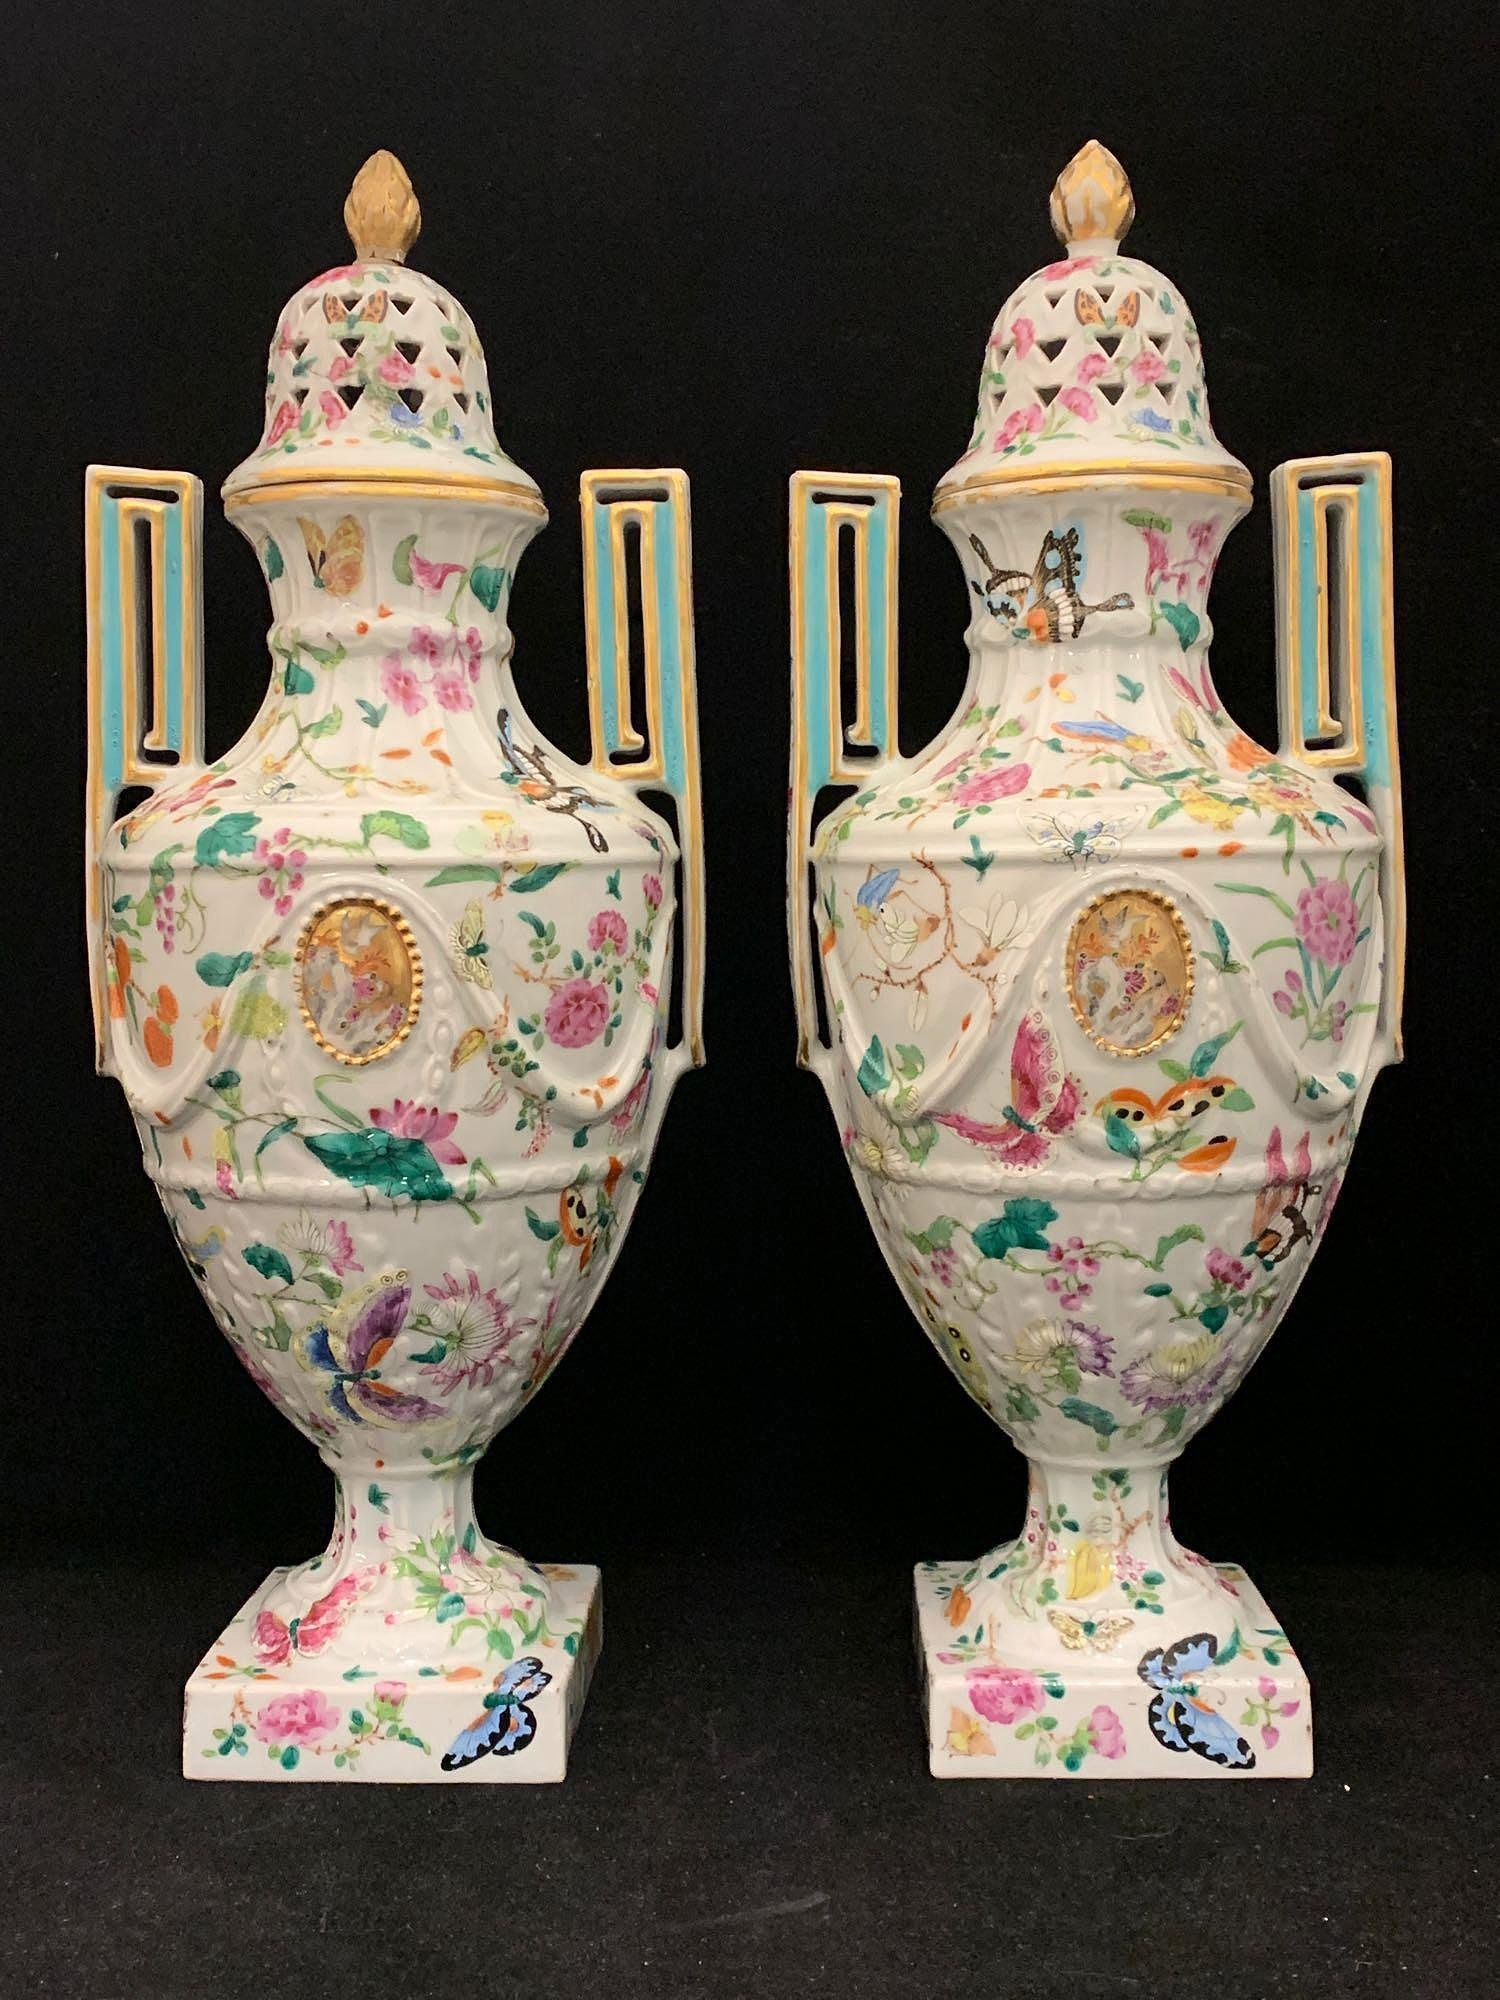 Pair of Chinese Famille Rose Porcelain Covered Vases